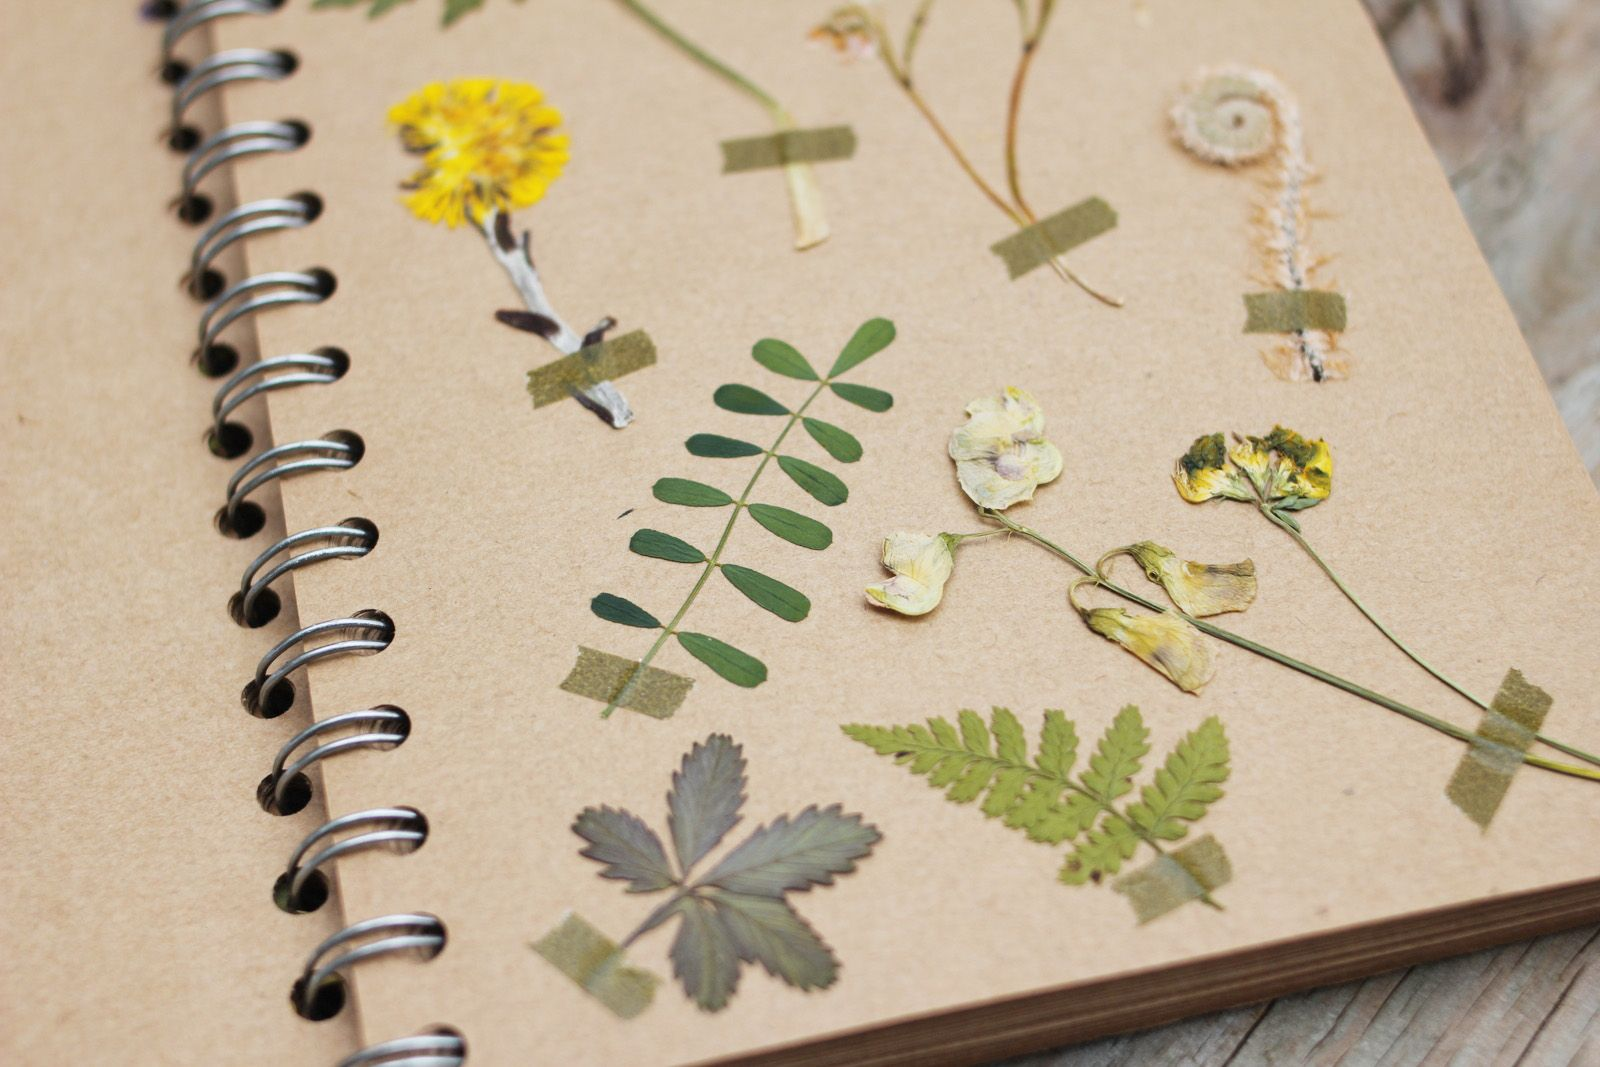 How to scrapbook dried flowers - Pretty Way To Organize Pressed Flowers Held In Place With Washi Tape In A Kraft